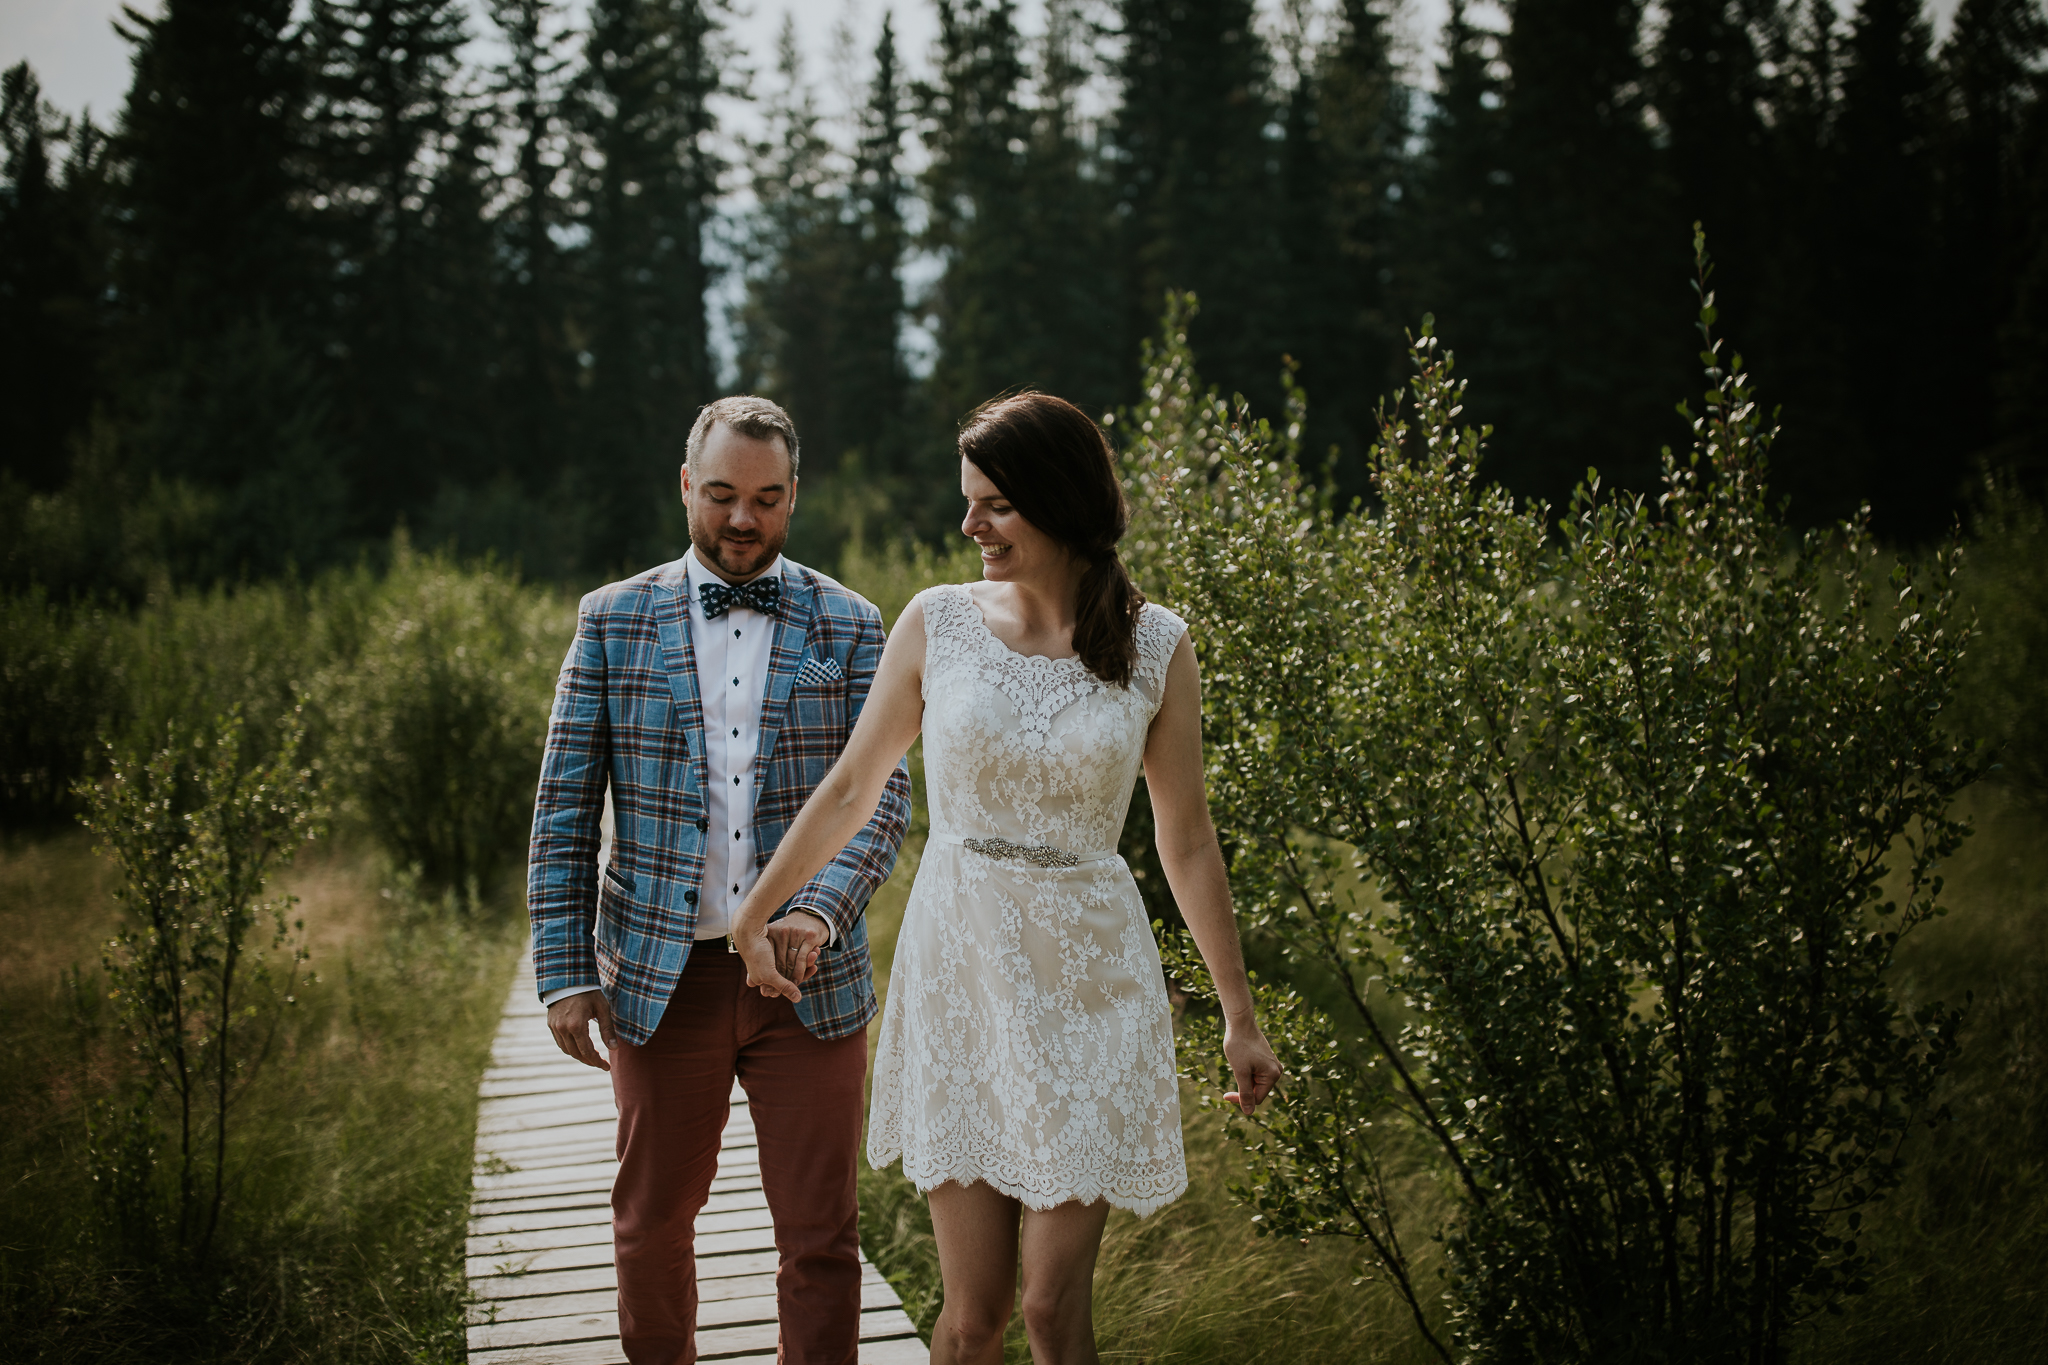 20170805-adventureelopementphotographercanada-canadaadventureelopement-adventureweddingphotographer-cedarlakewedding-goldenweddingphotographer-Rob and Dee-4176.jpg